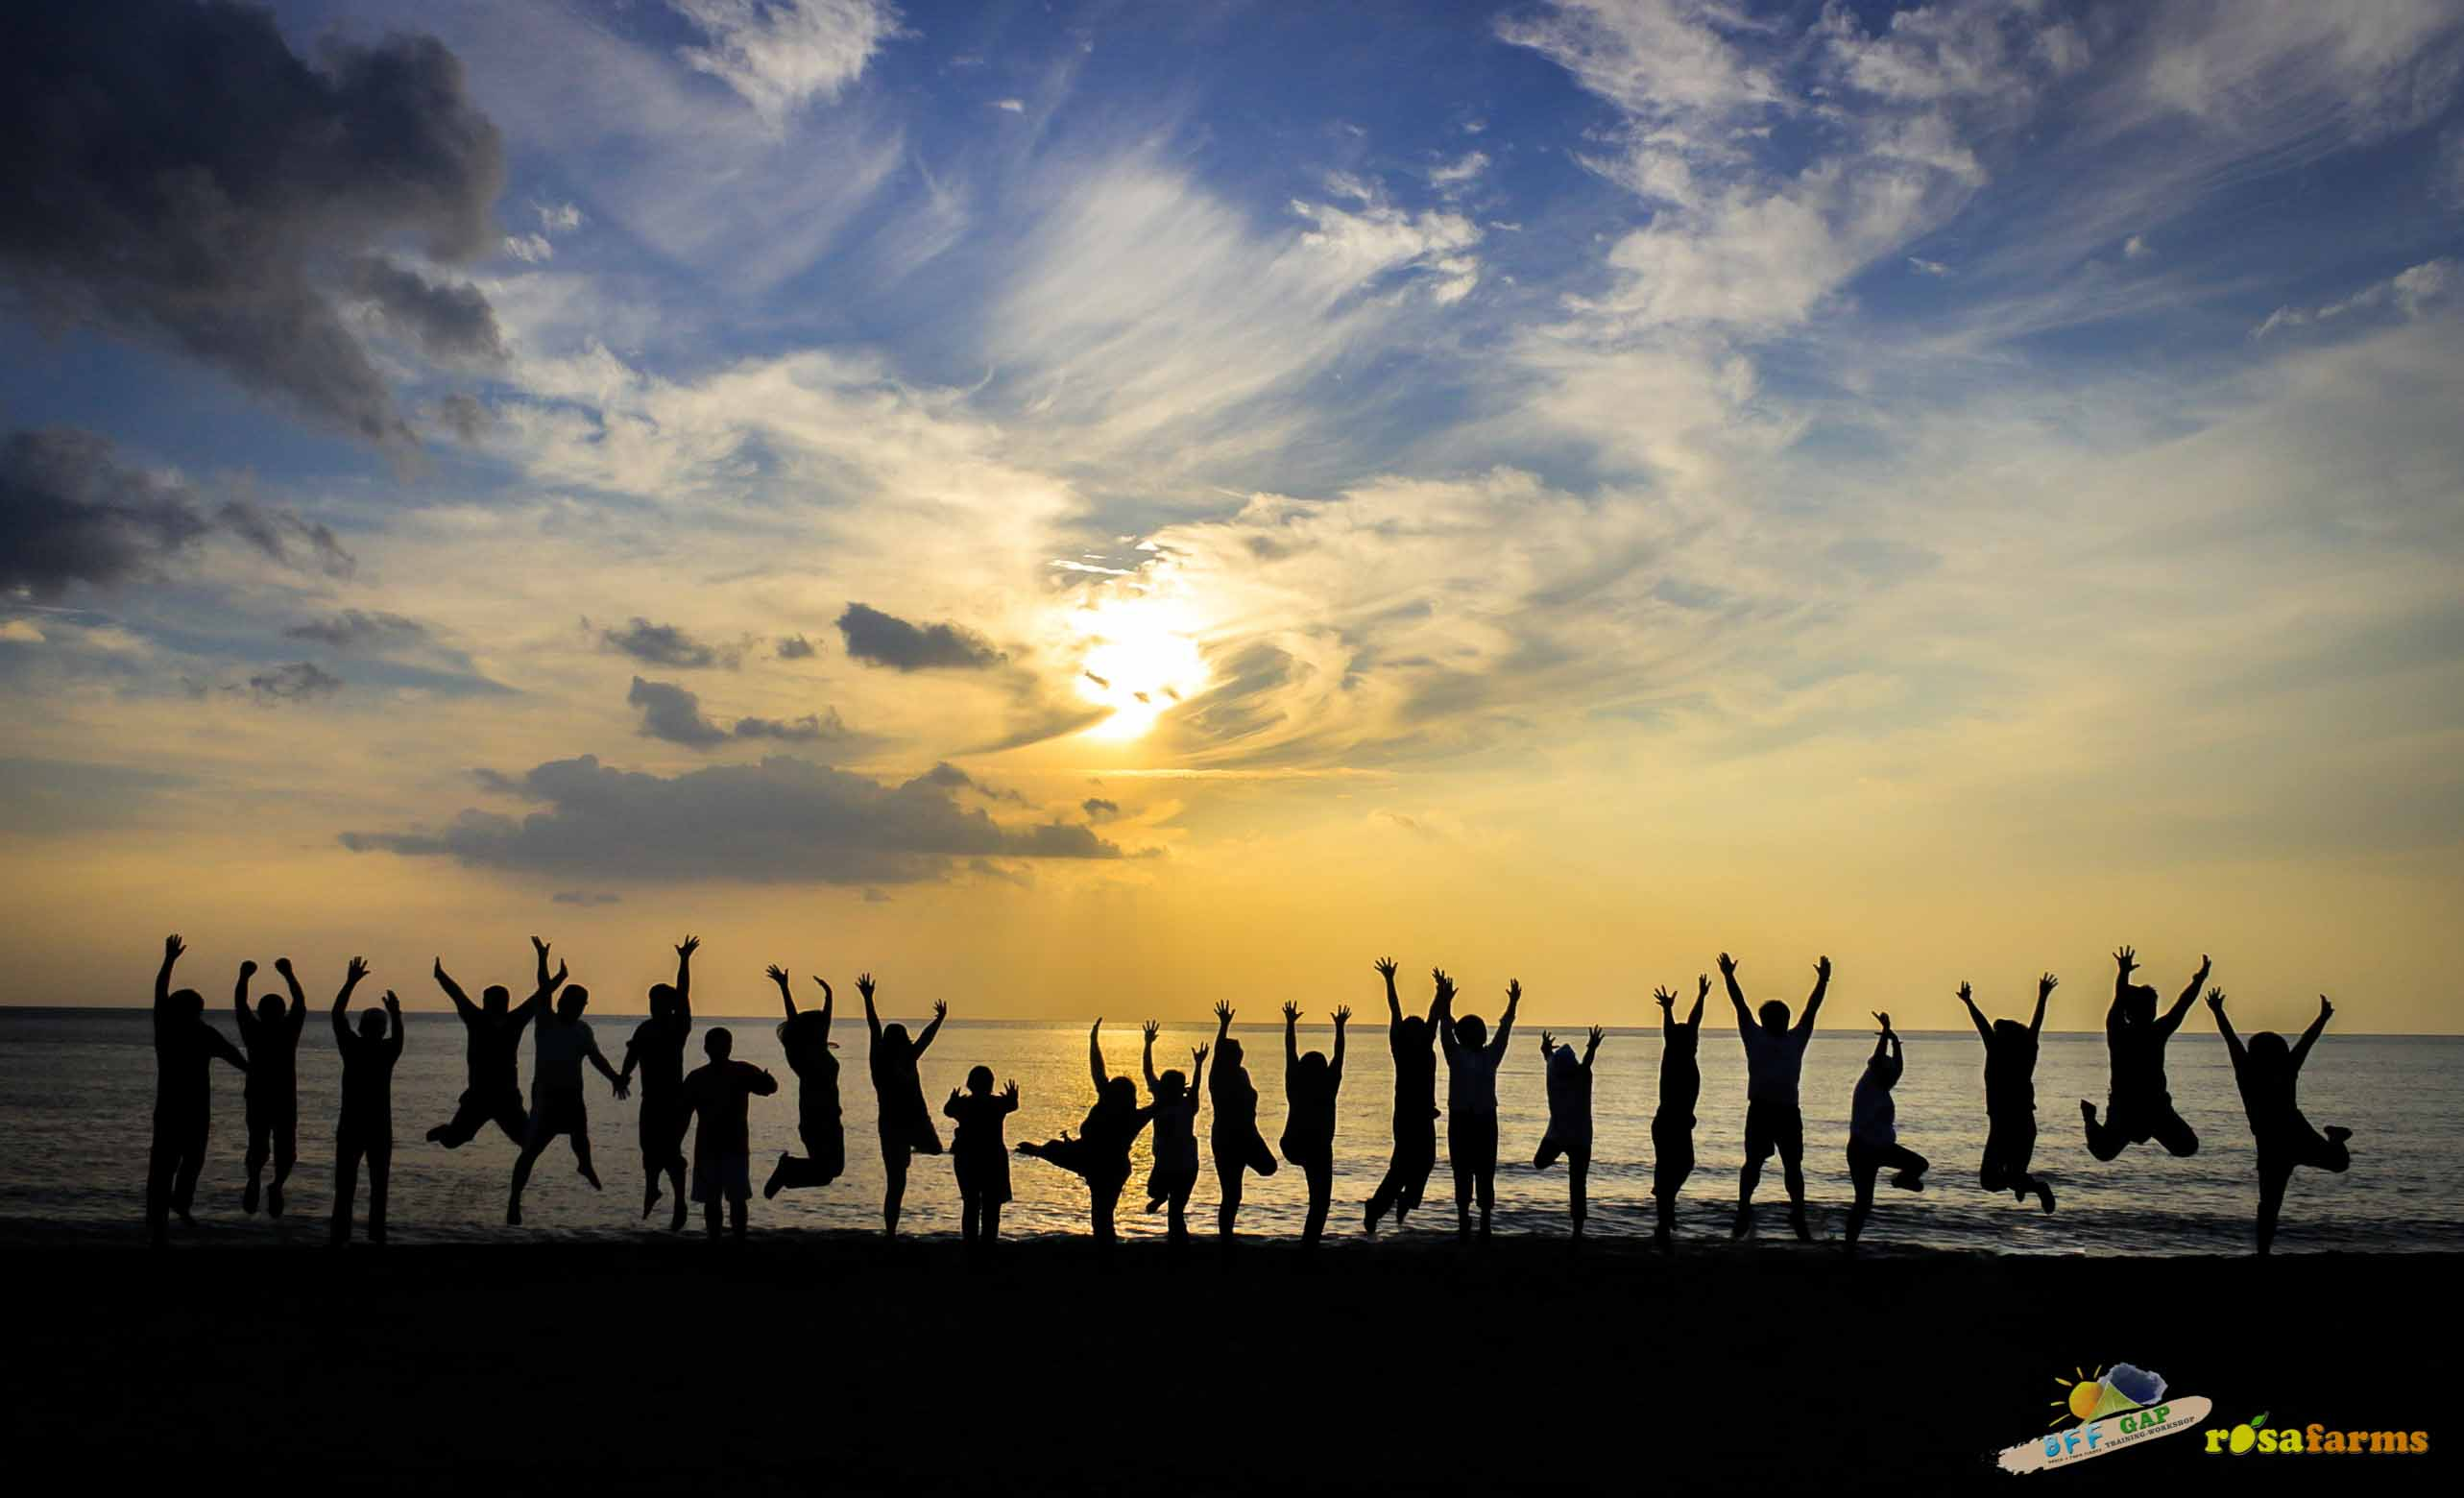 Teambuilding photo of Batch 3 with the glorious sunset at Crystal Beach as back drop